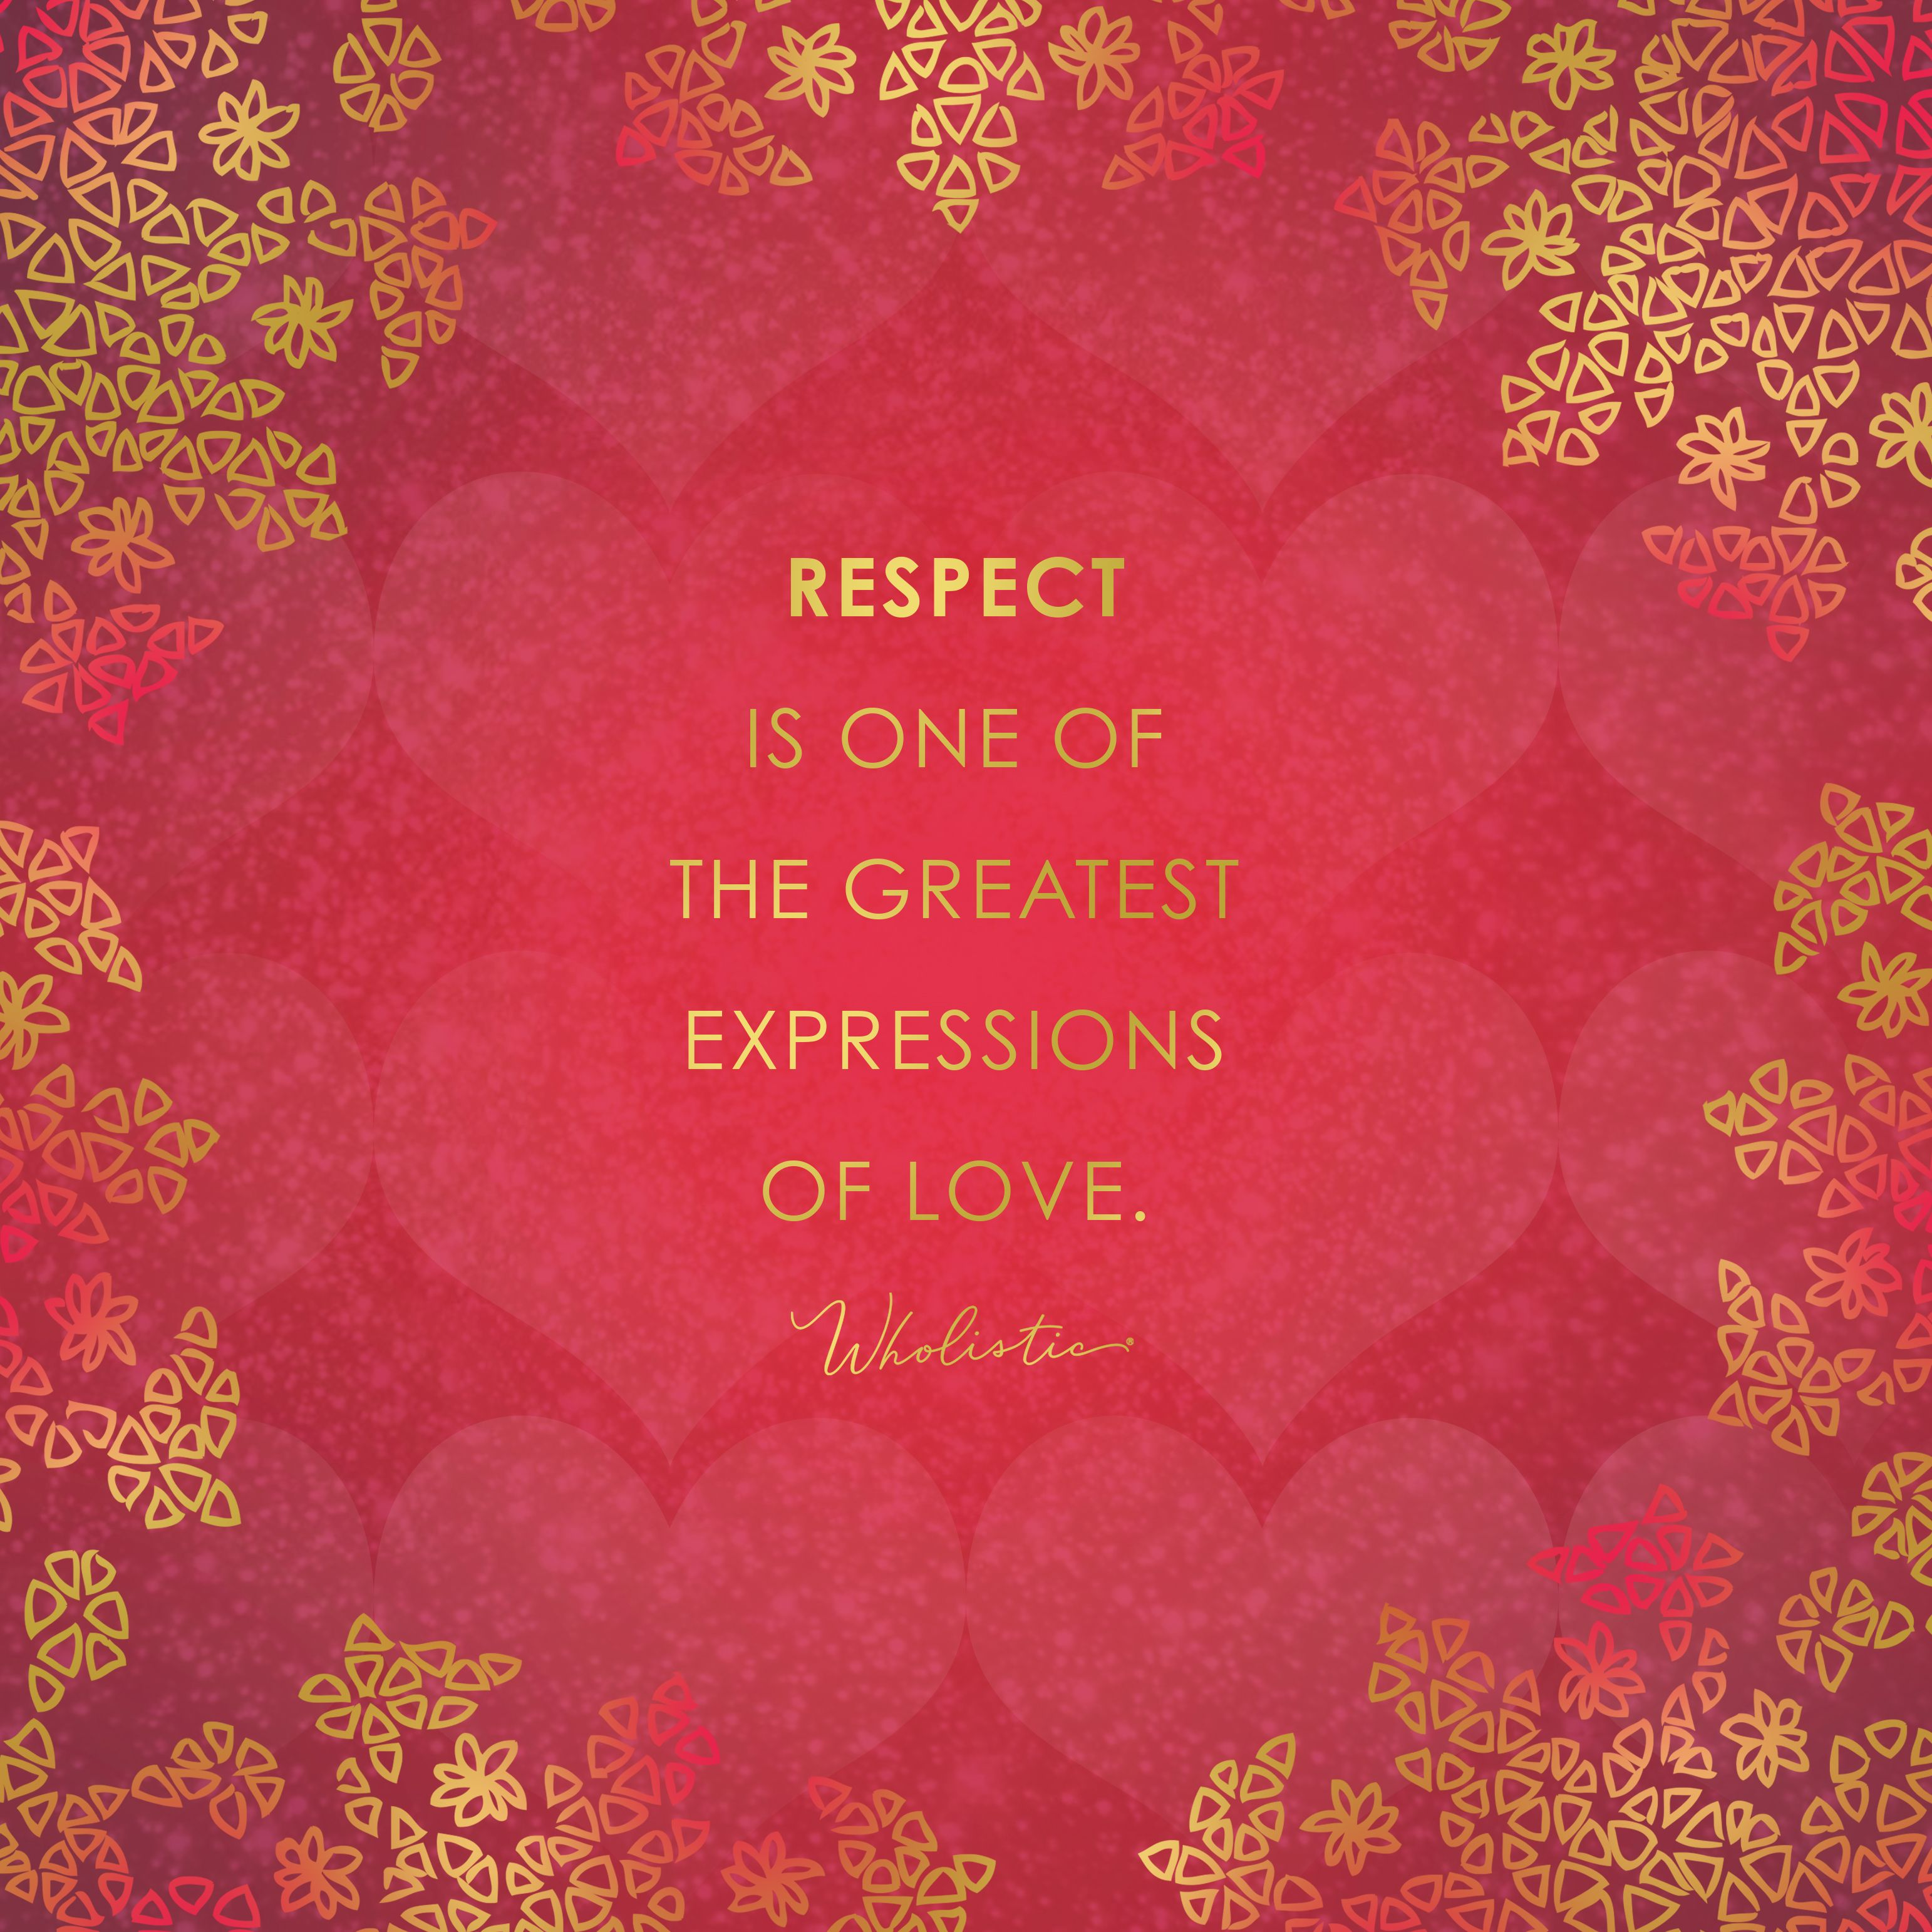 Quote: Respect is one of the greatest expressions of love.